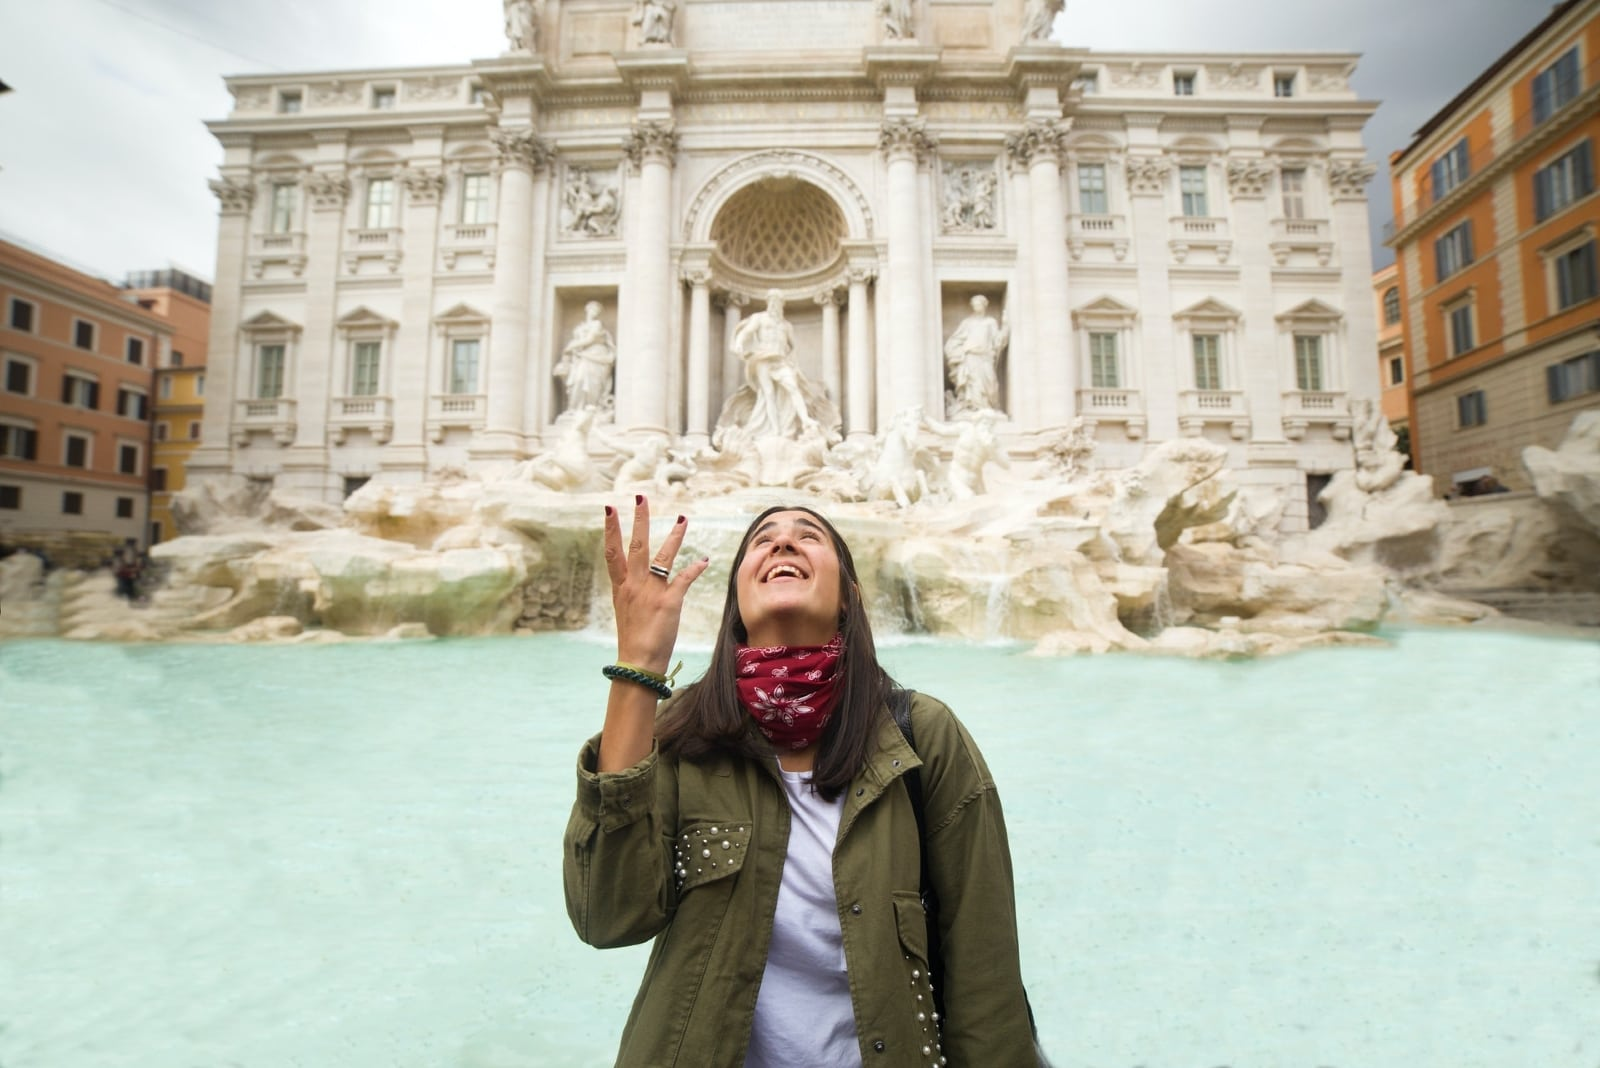 happy woman throwing coin in trevi fountain